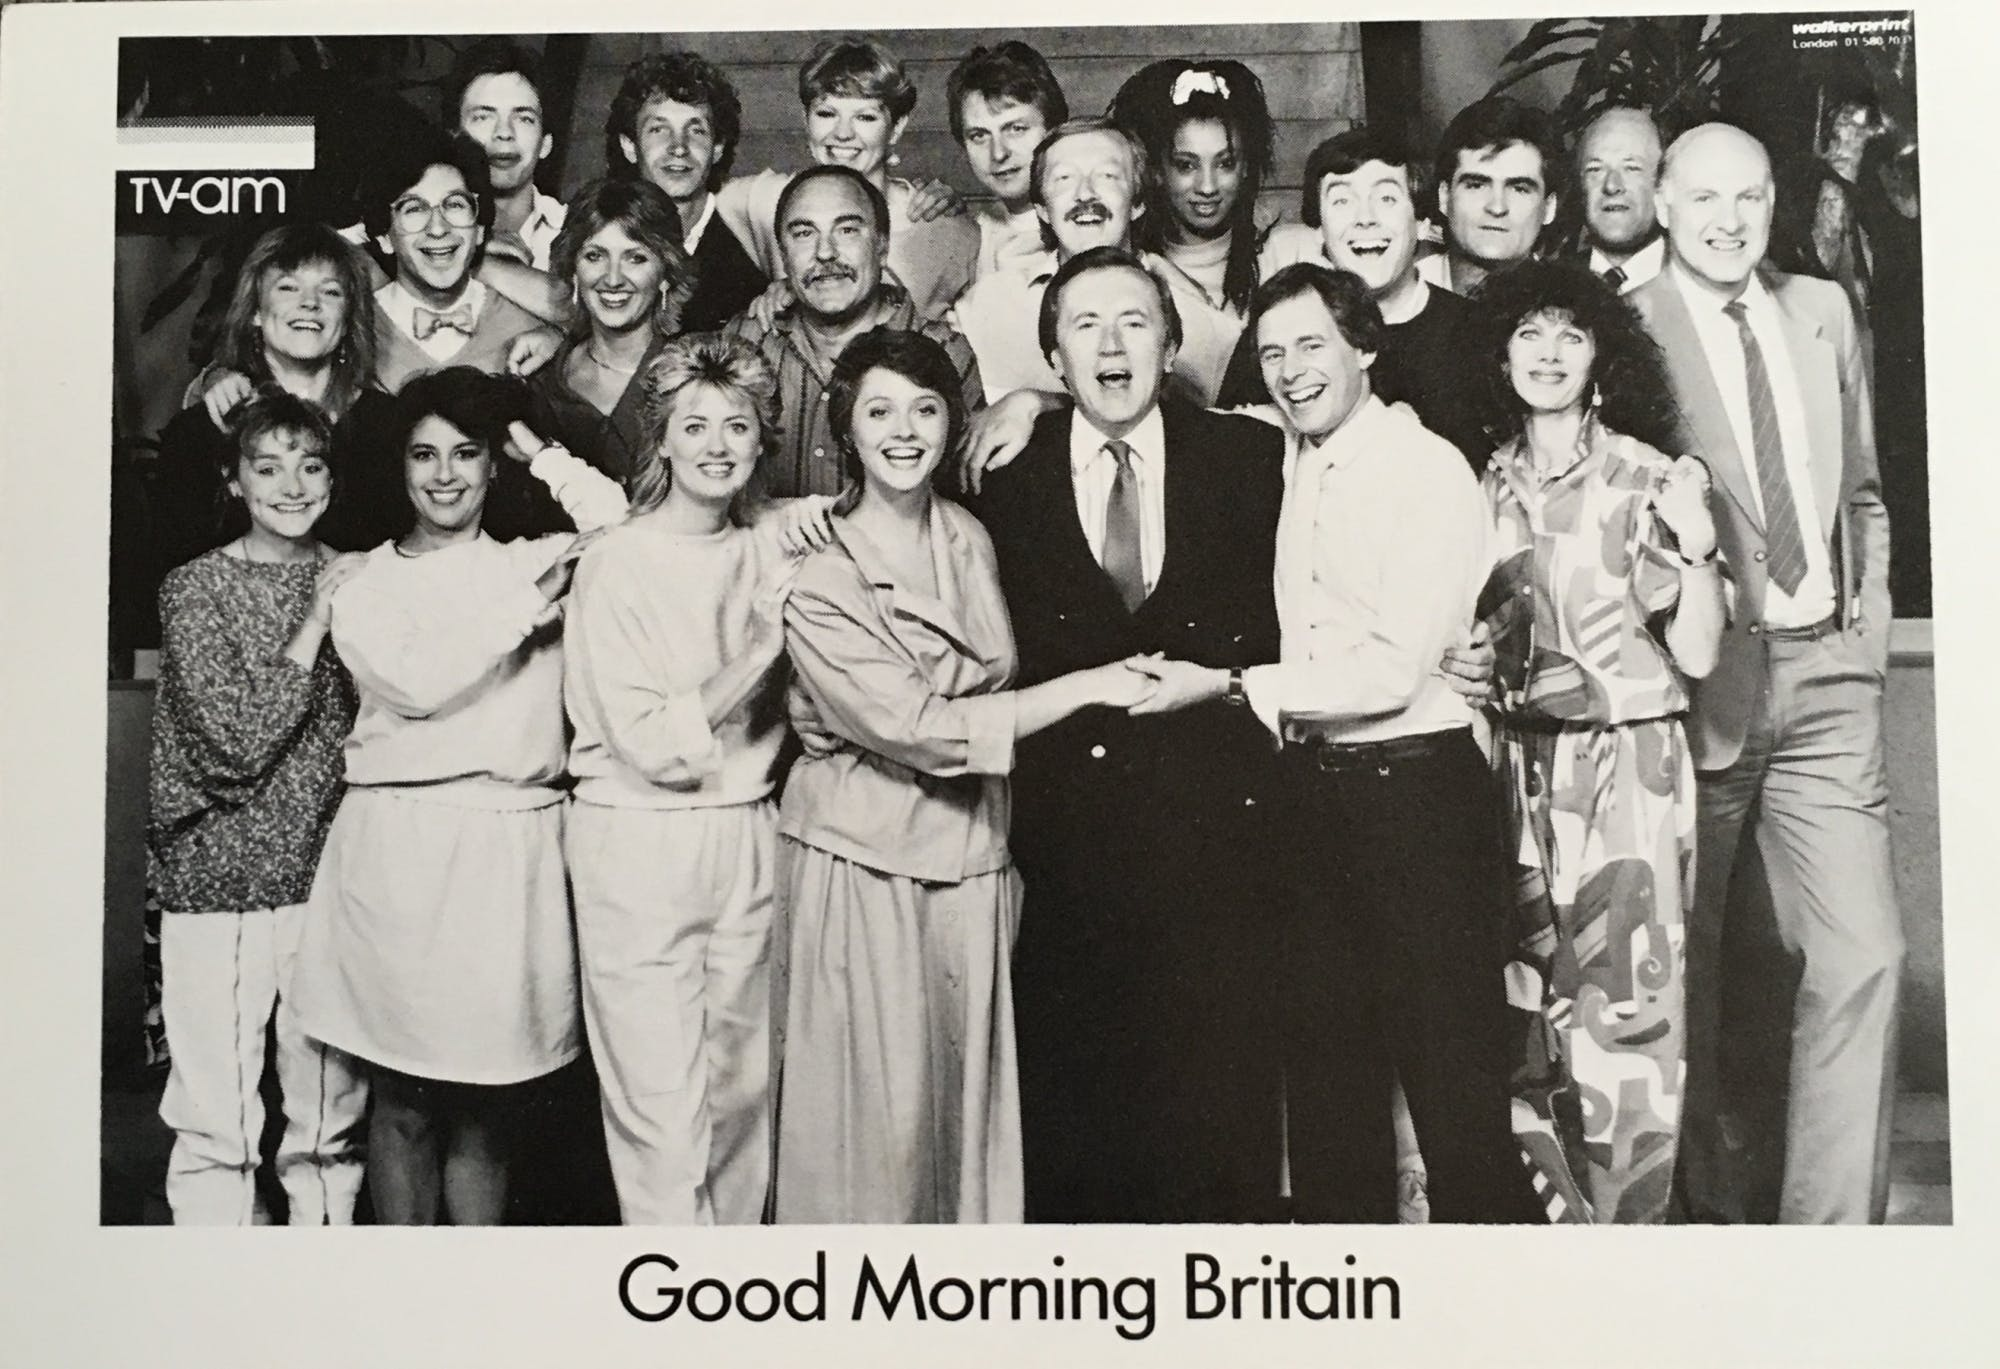 Good Morning Britain team, 1985